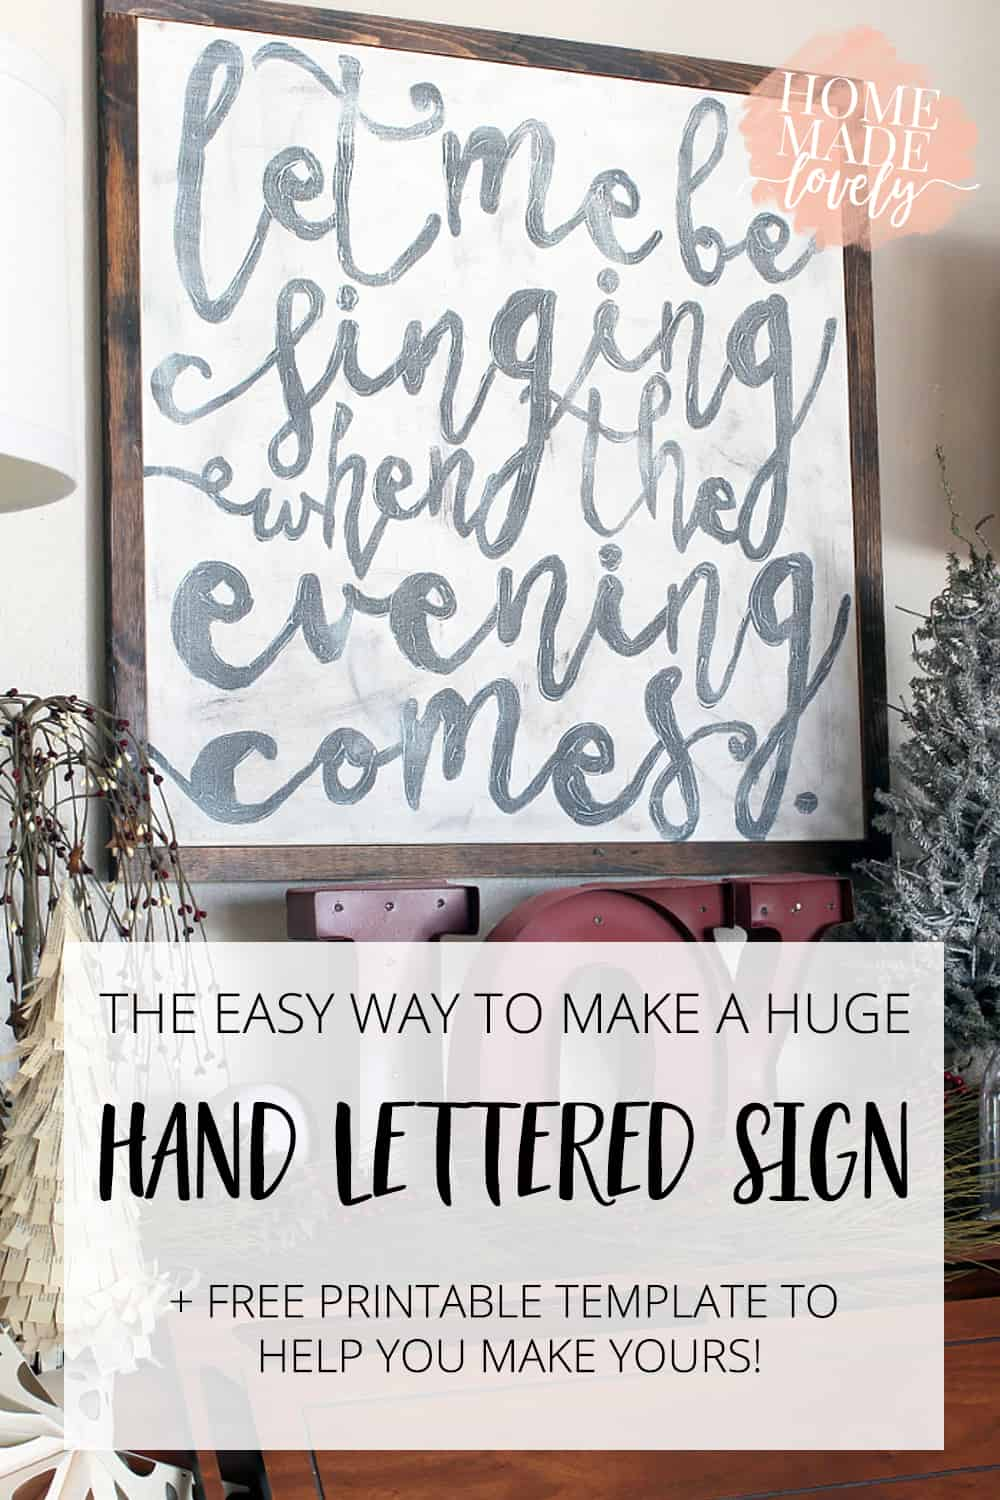 The Easy Way to Make a Huge Hand Lettered Sign + Free Template